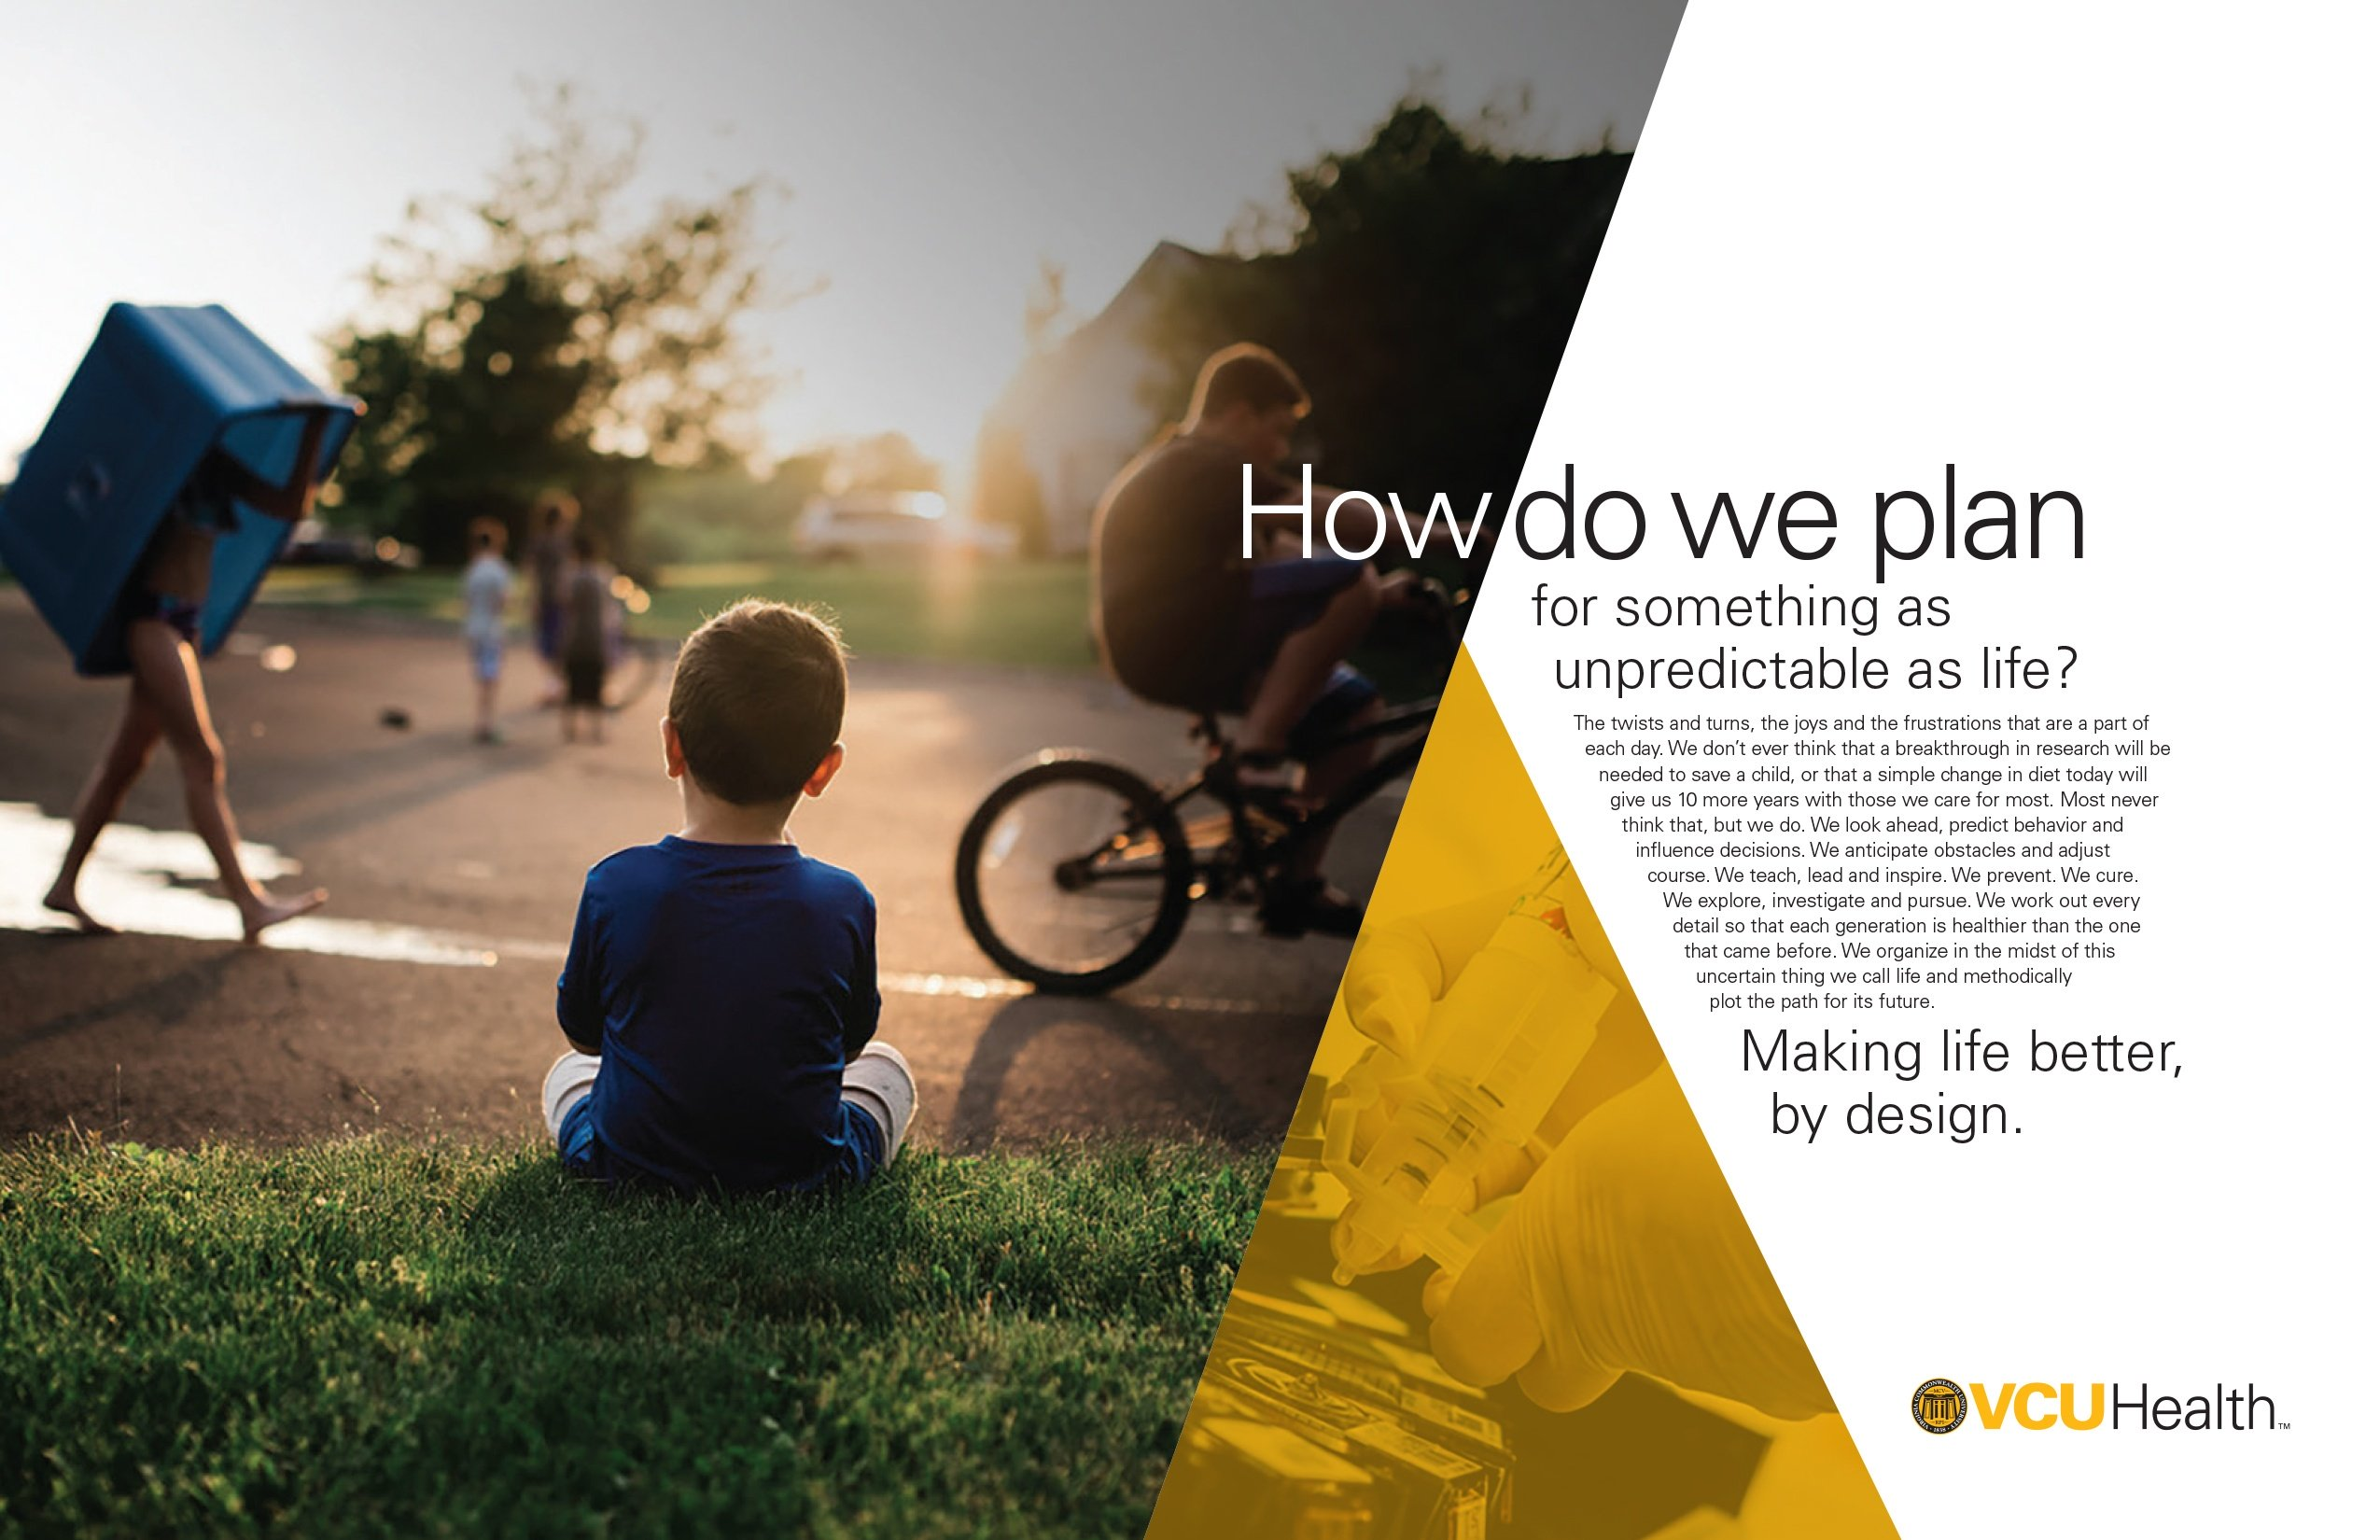 VCU Health - How do we plan - print ad